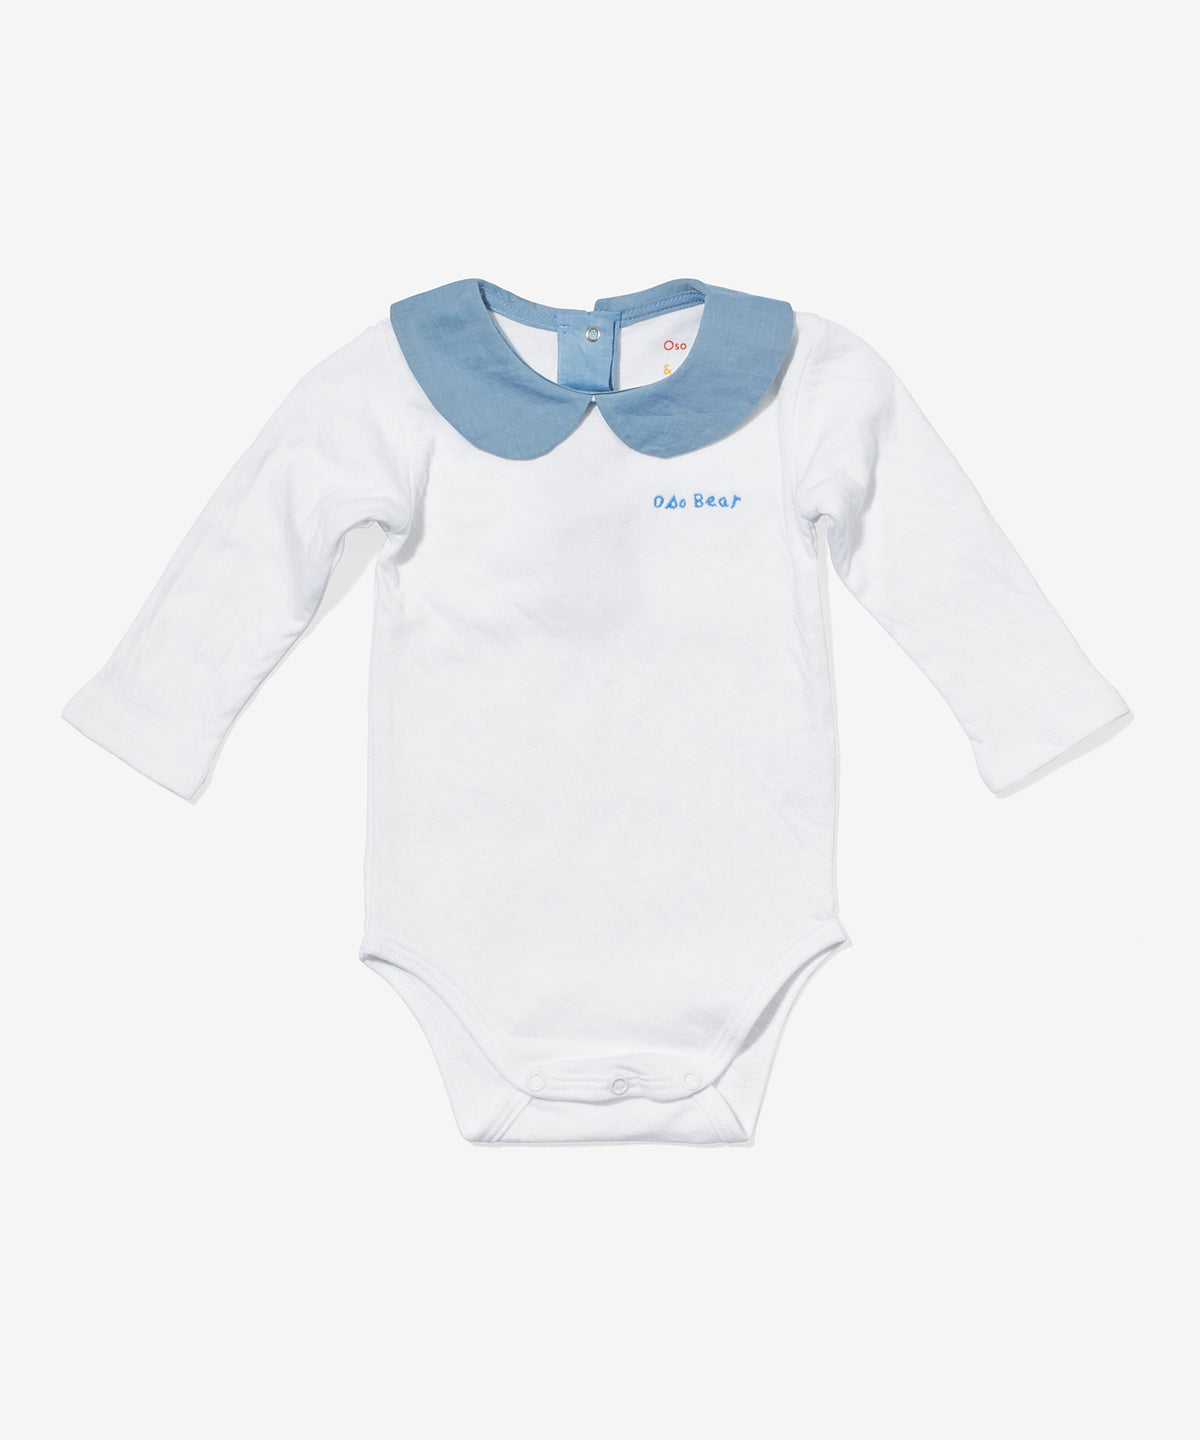 Peter Pan Onesie, Chambray